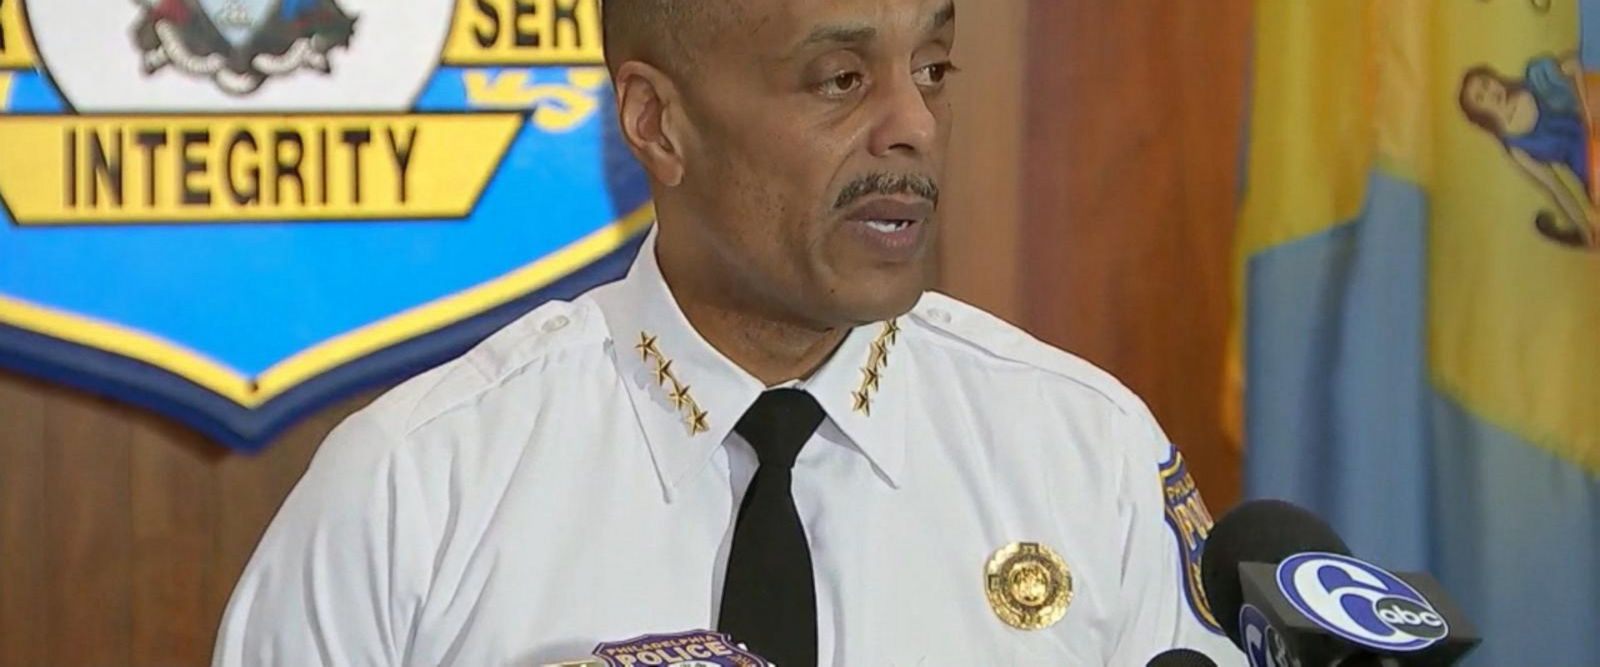 VIDEO: Police commissioner apologizes to men arrested at Starbucks